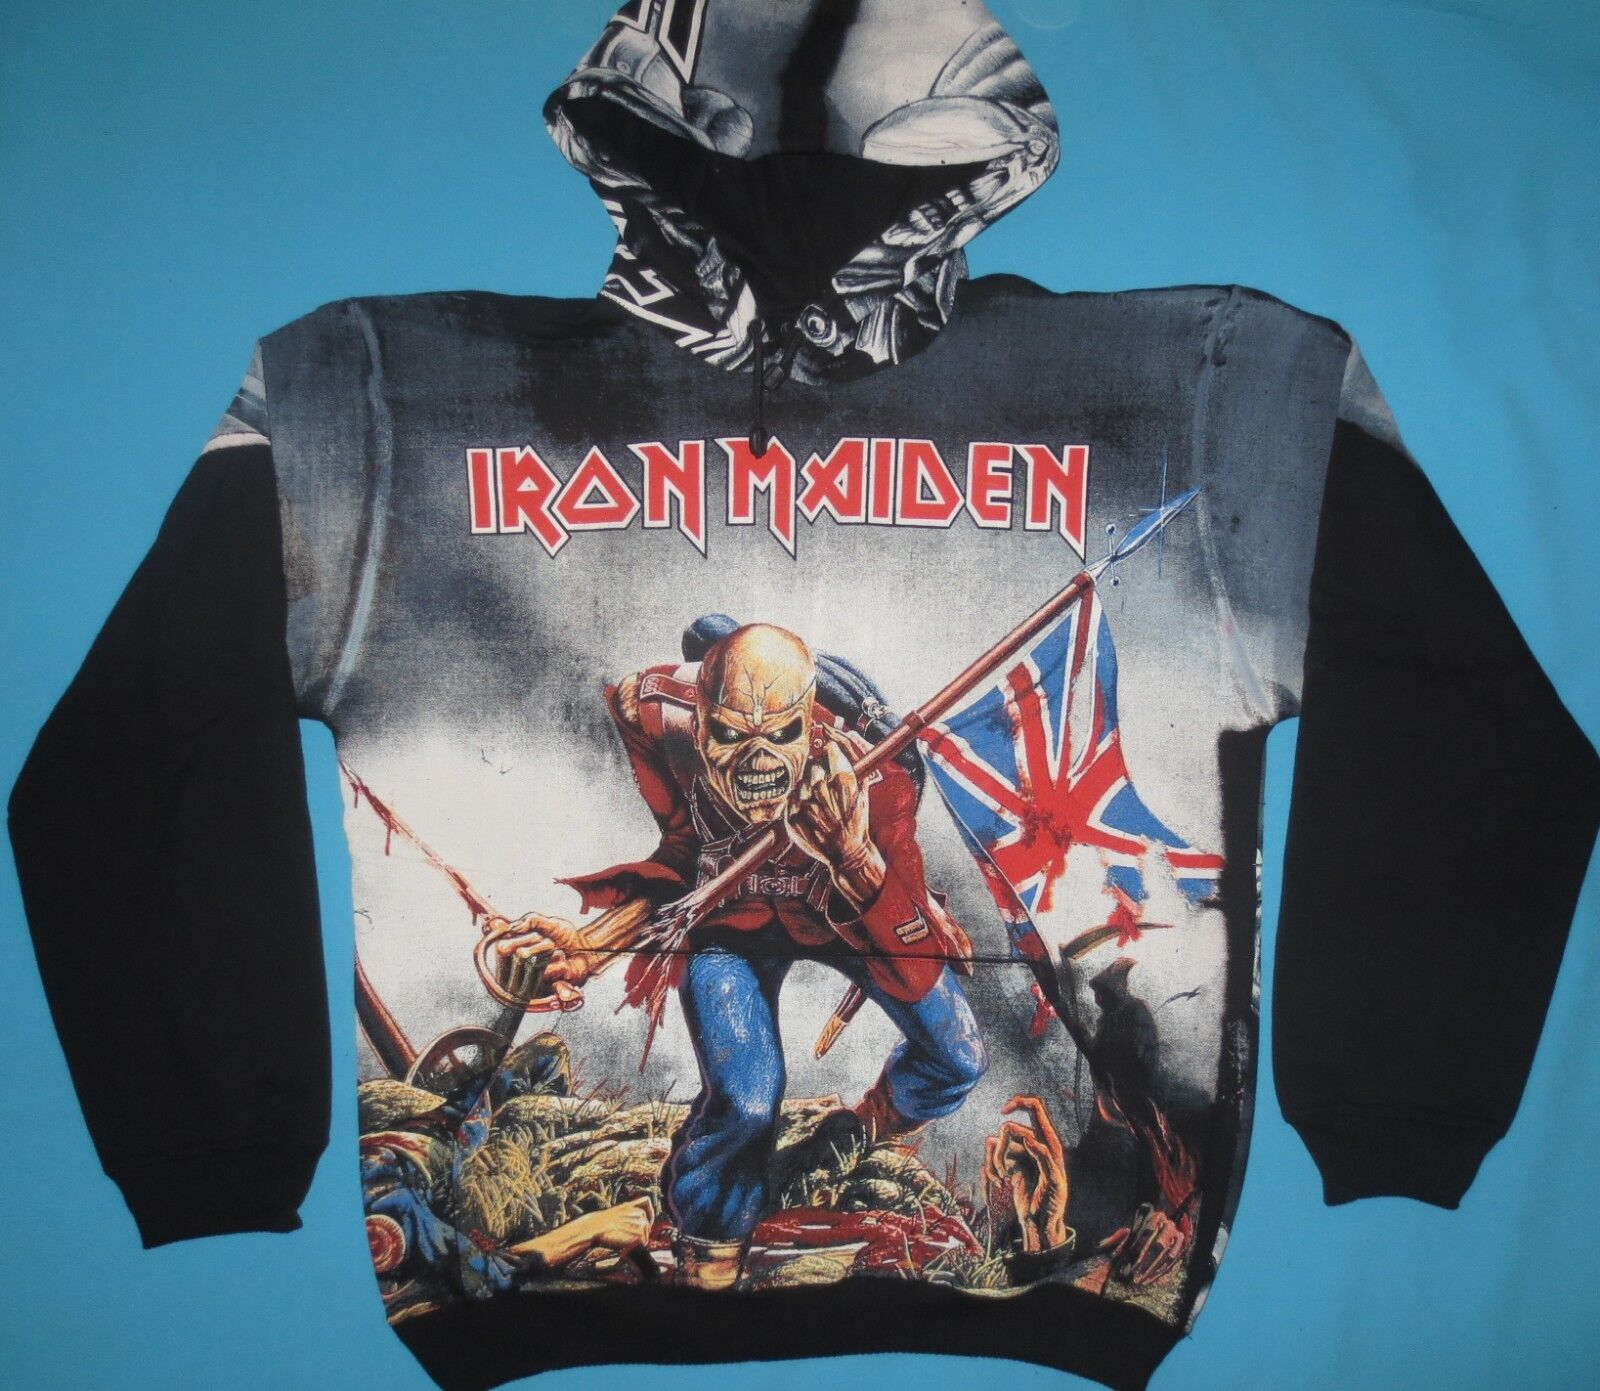 Iron Maiden - The Trooper Hood Sweater Sweatshirt Pullover Hoodie